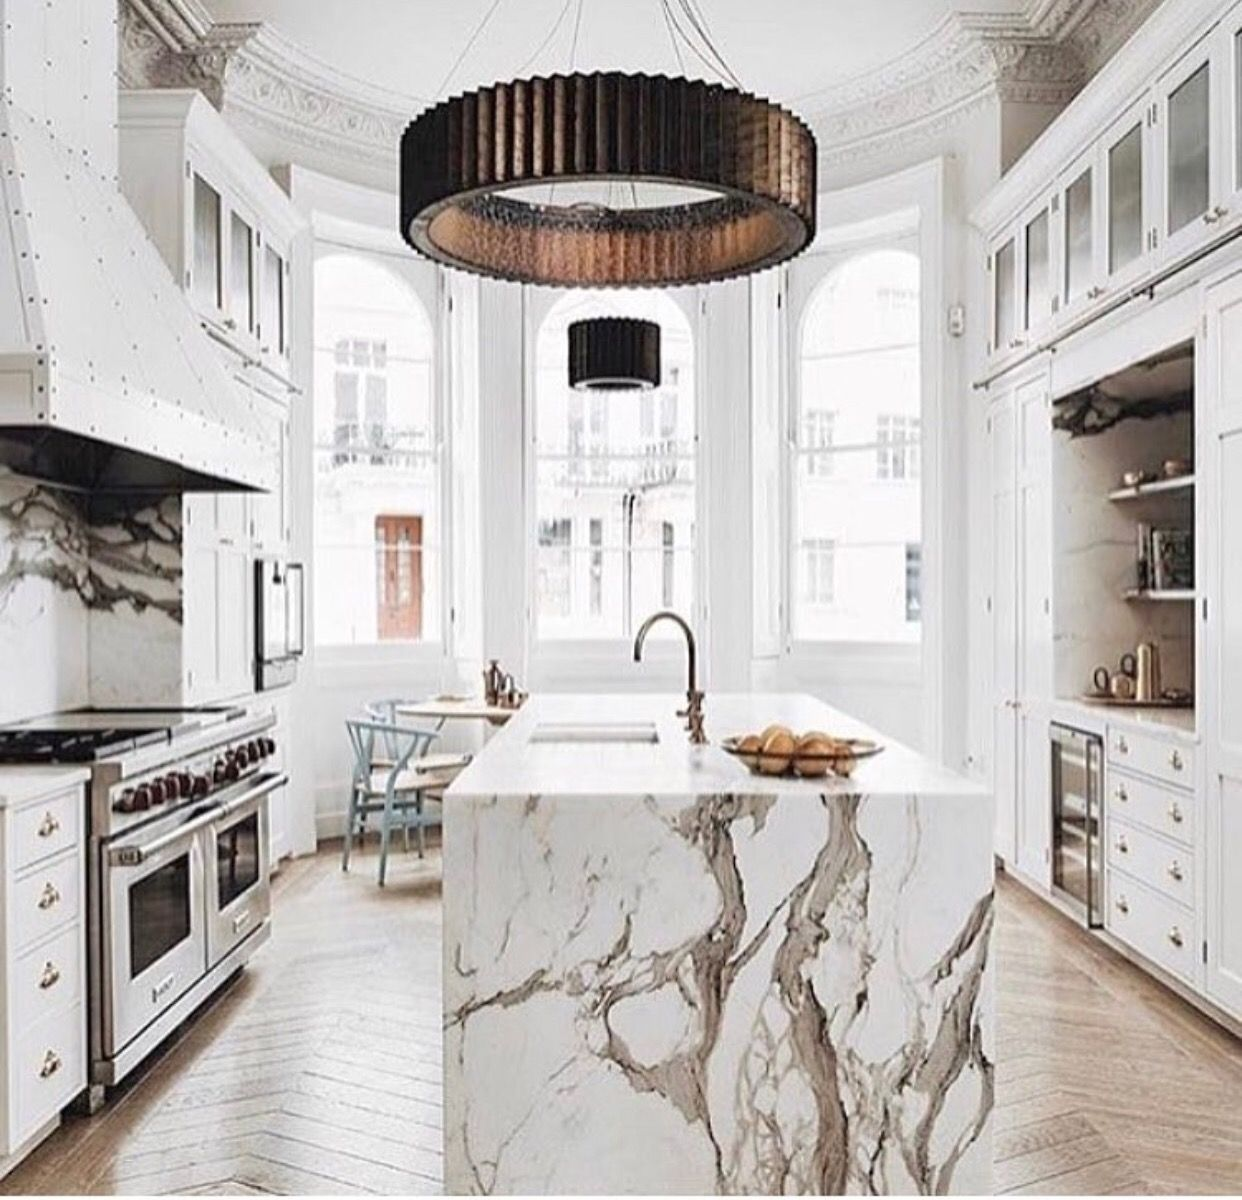 Unique Kitchen Design And Layout. Marble Kitchen Island